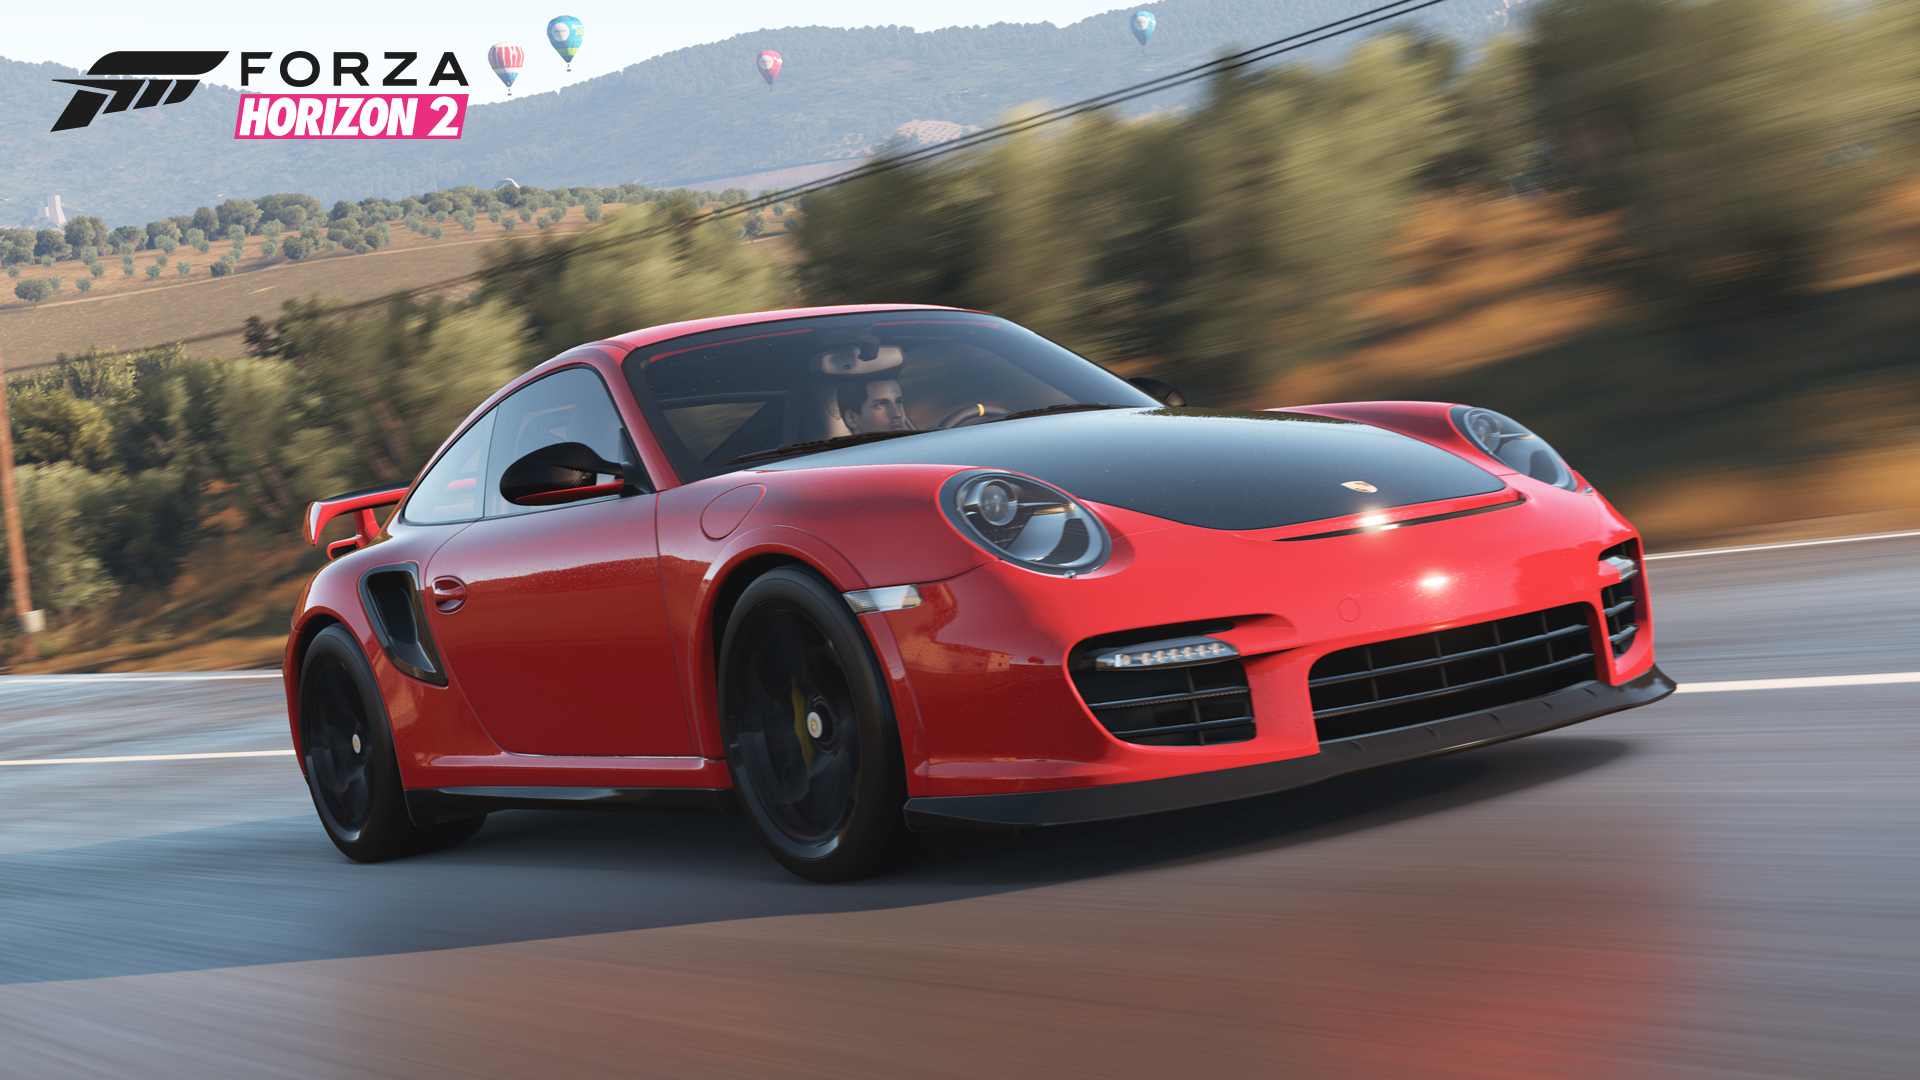 forza horizon 2 test tipps videos news release termin. Black Bedroom Furniture Sets. Home Design Ideas